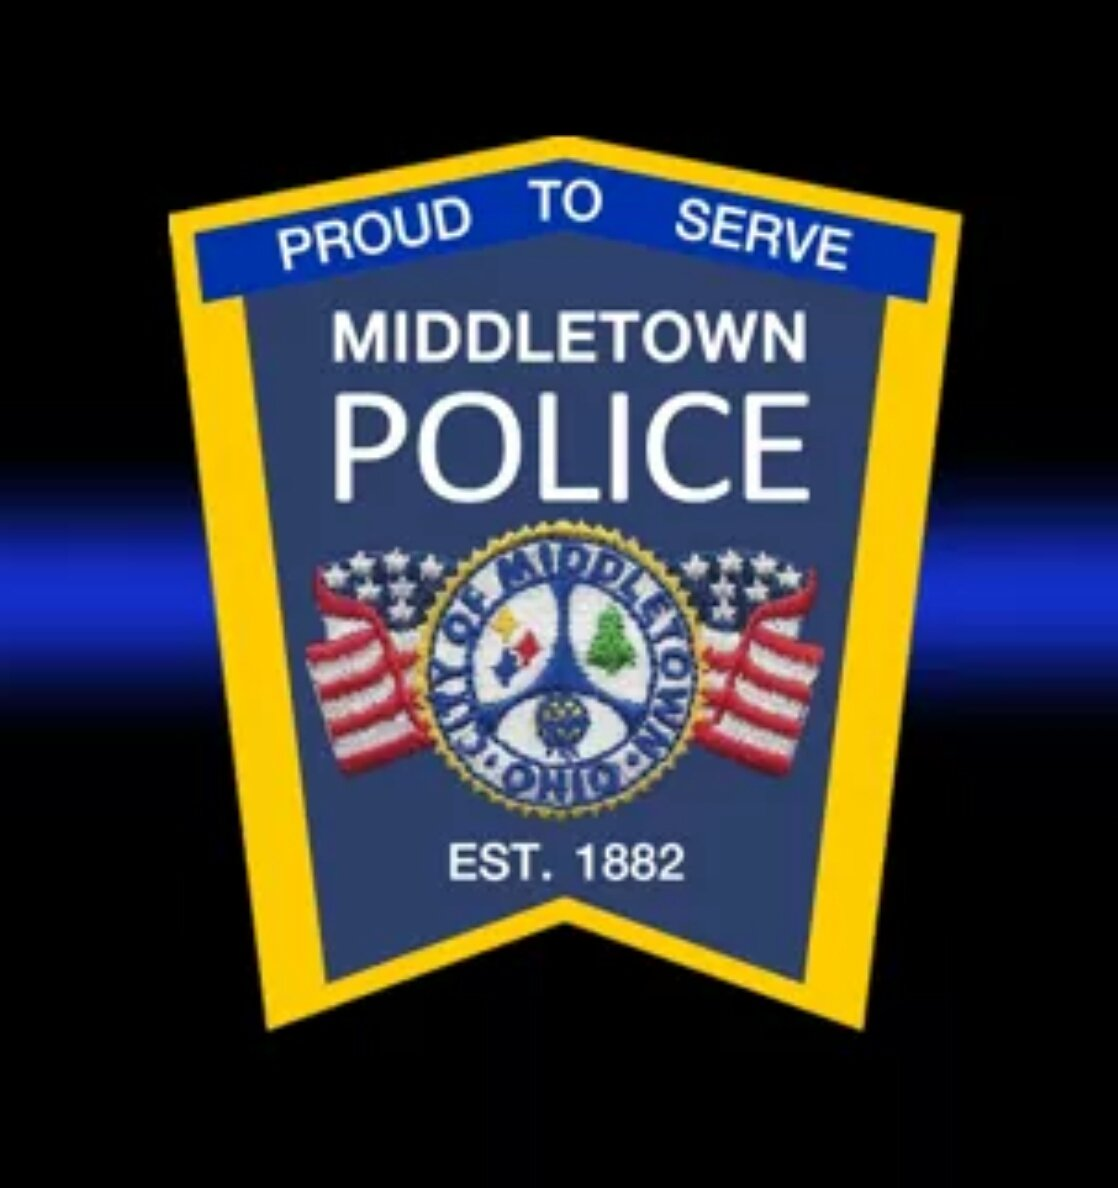 Middletown Division of Police on Twitter: